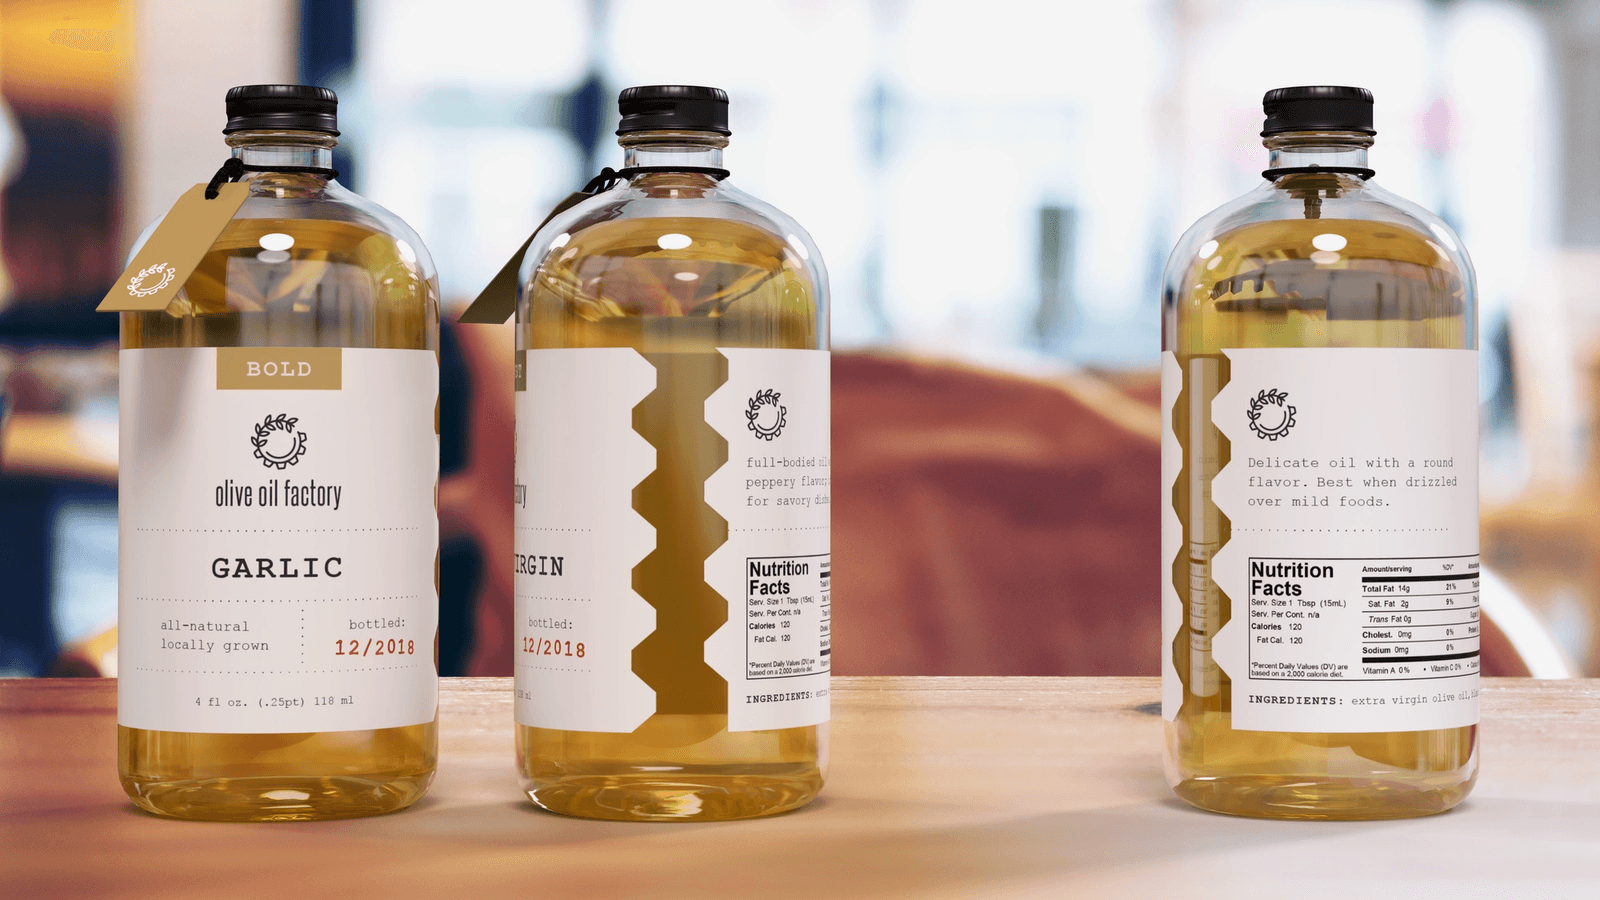 The Olive Oil Factory product packaging